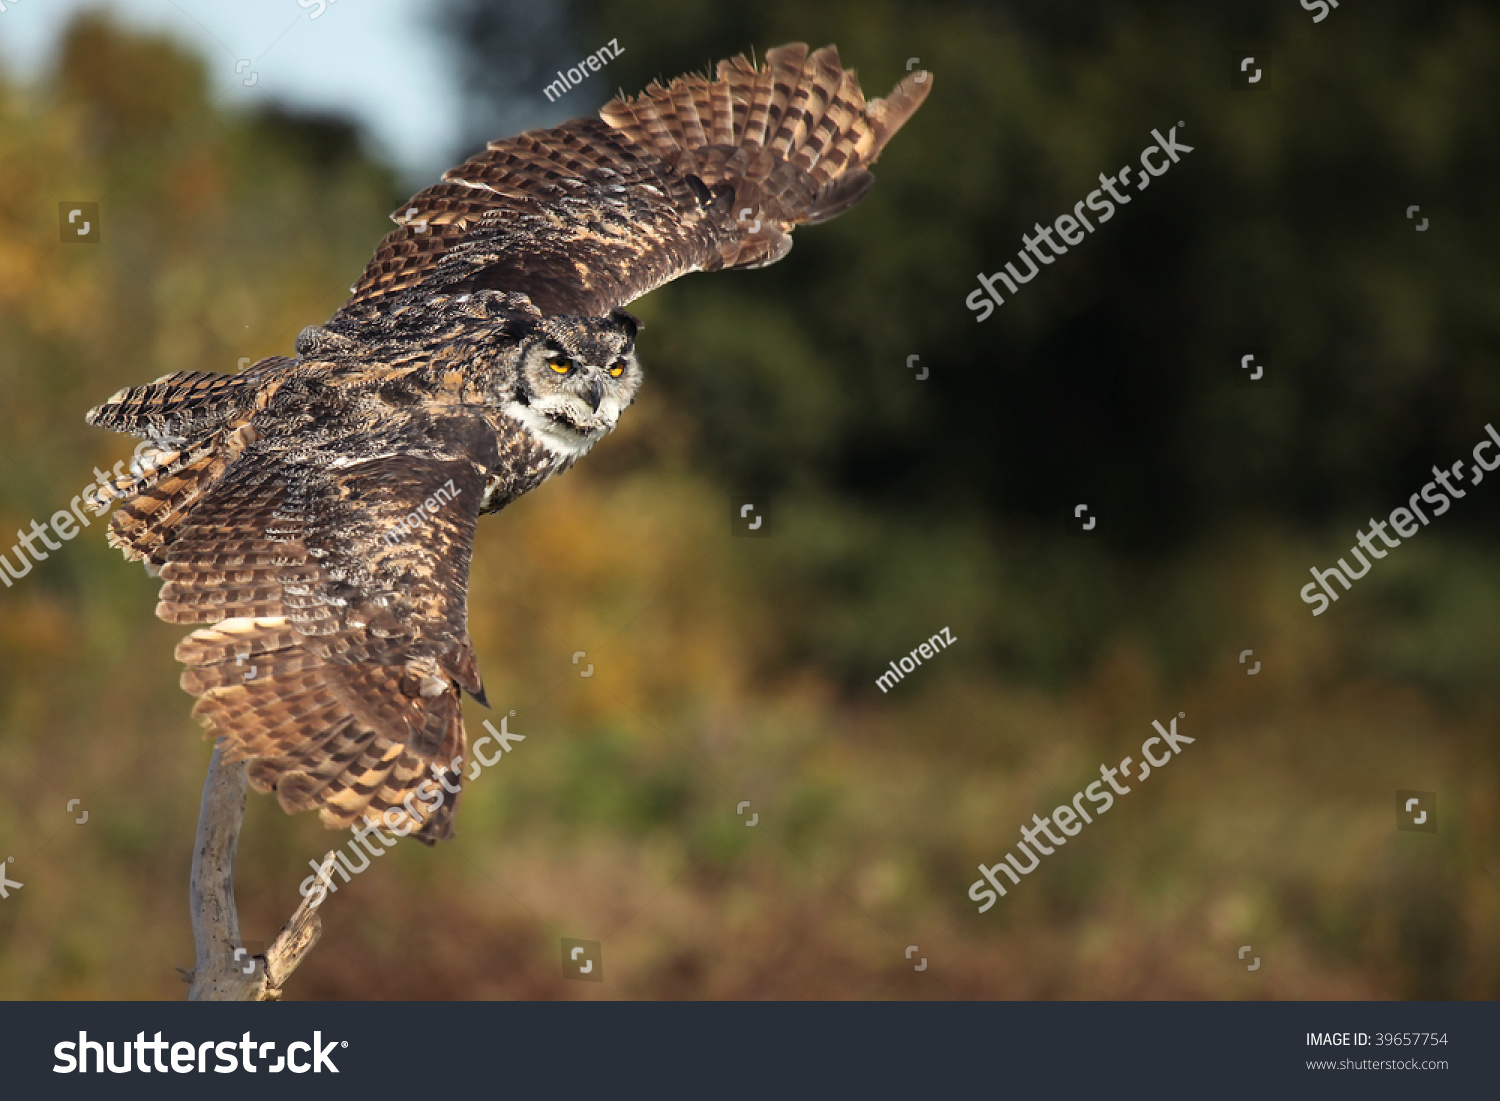 Great horned owl taking off - photo#4